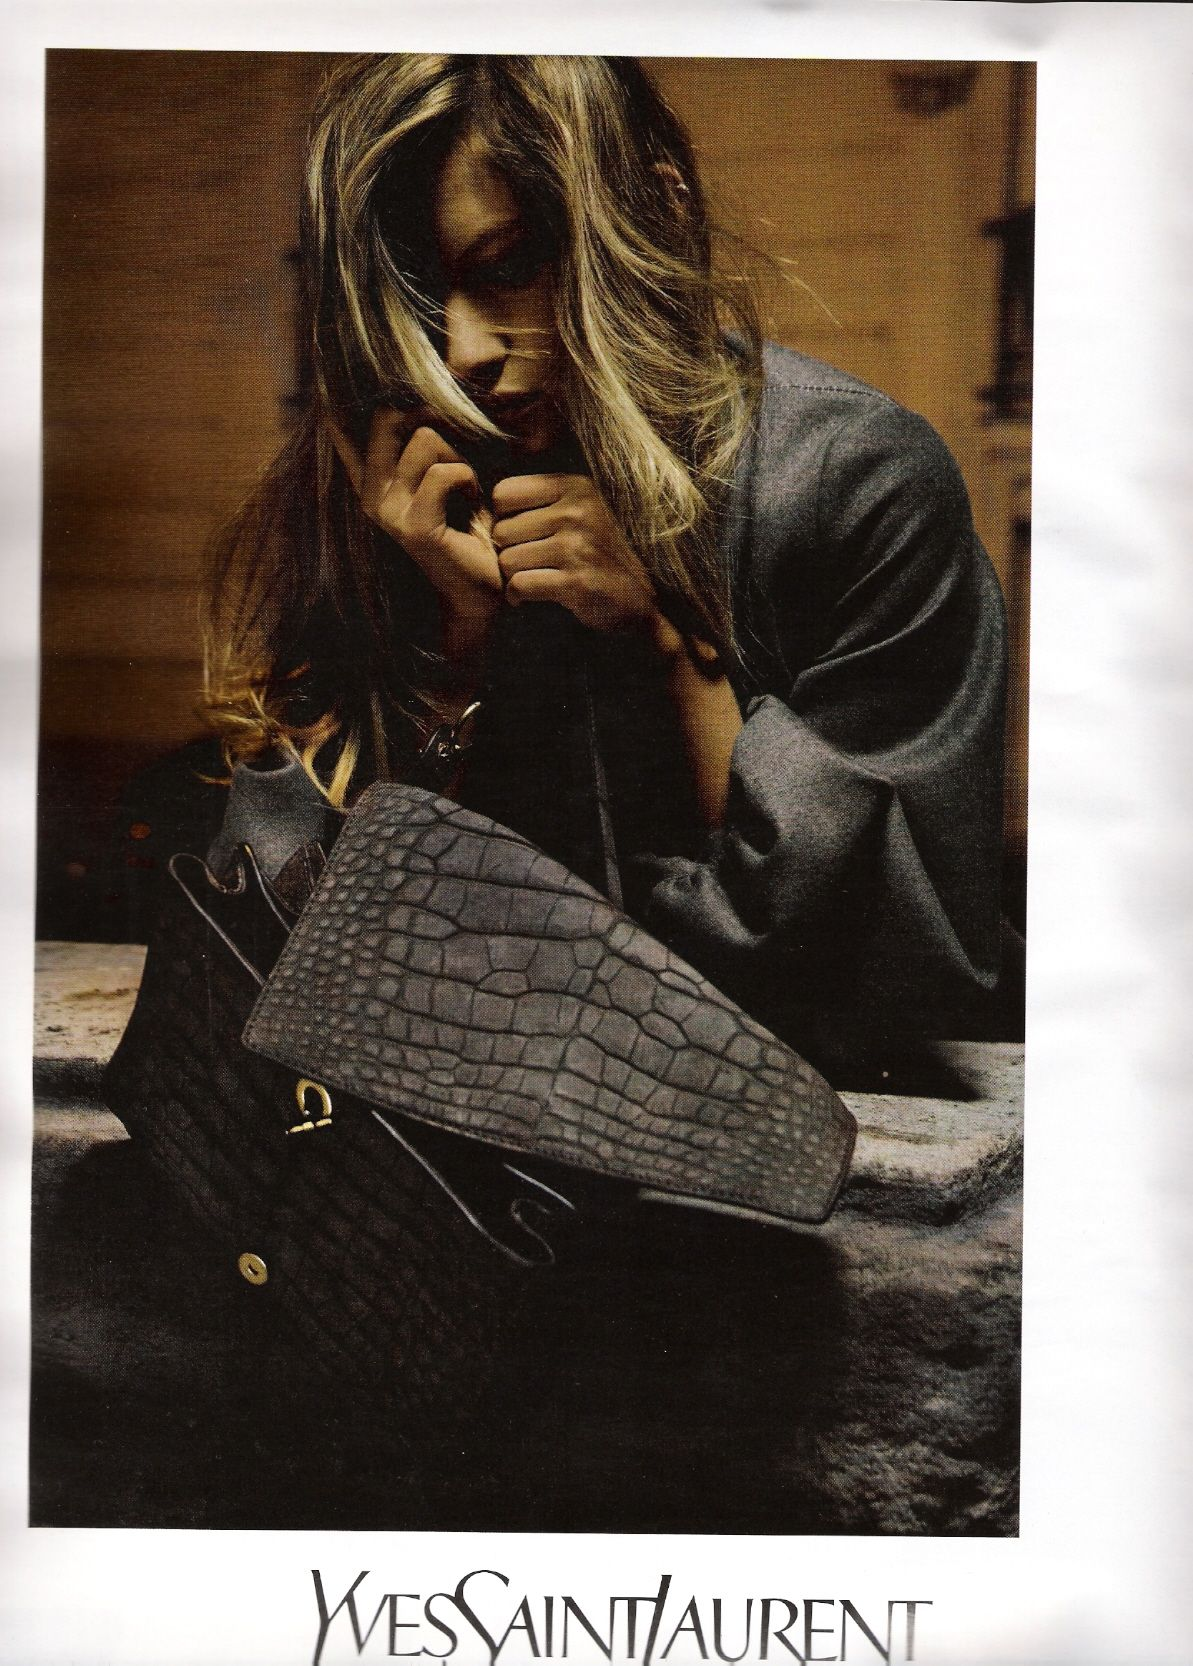 f3799067 Gisele Bundchen for YSL Fall/Winter 2007-2008 | Glossies | Gisele ...